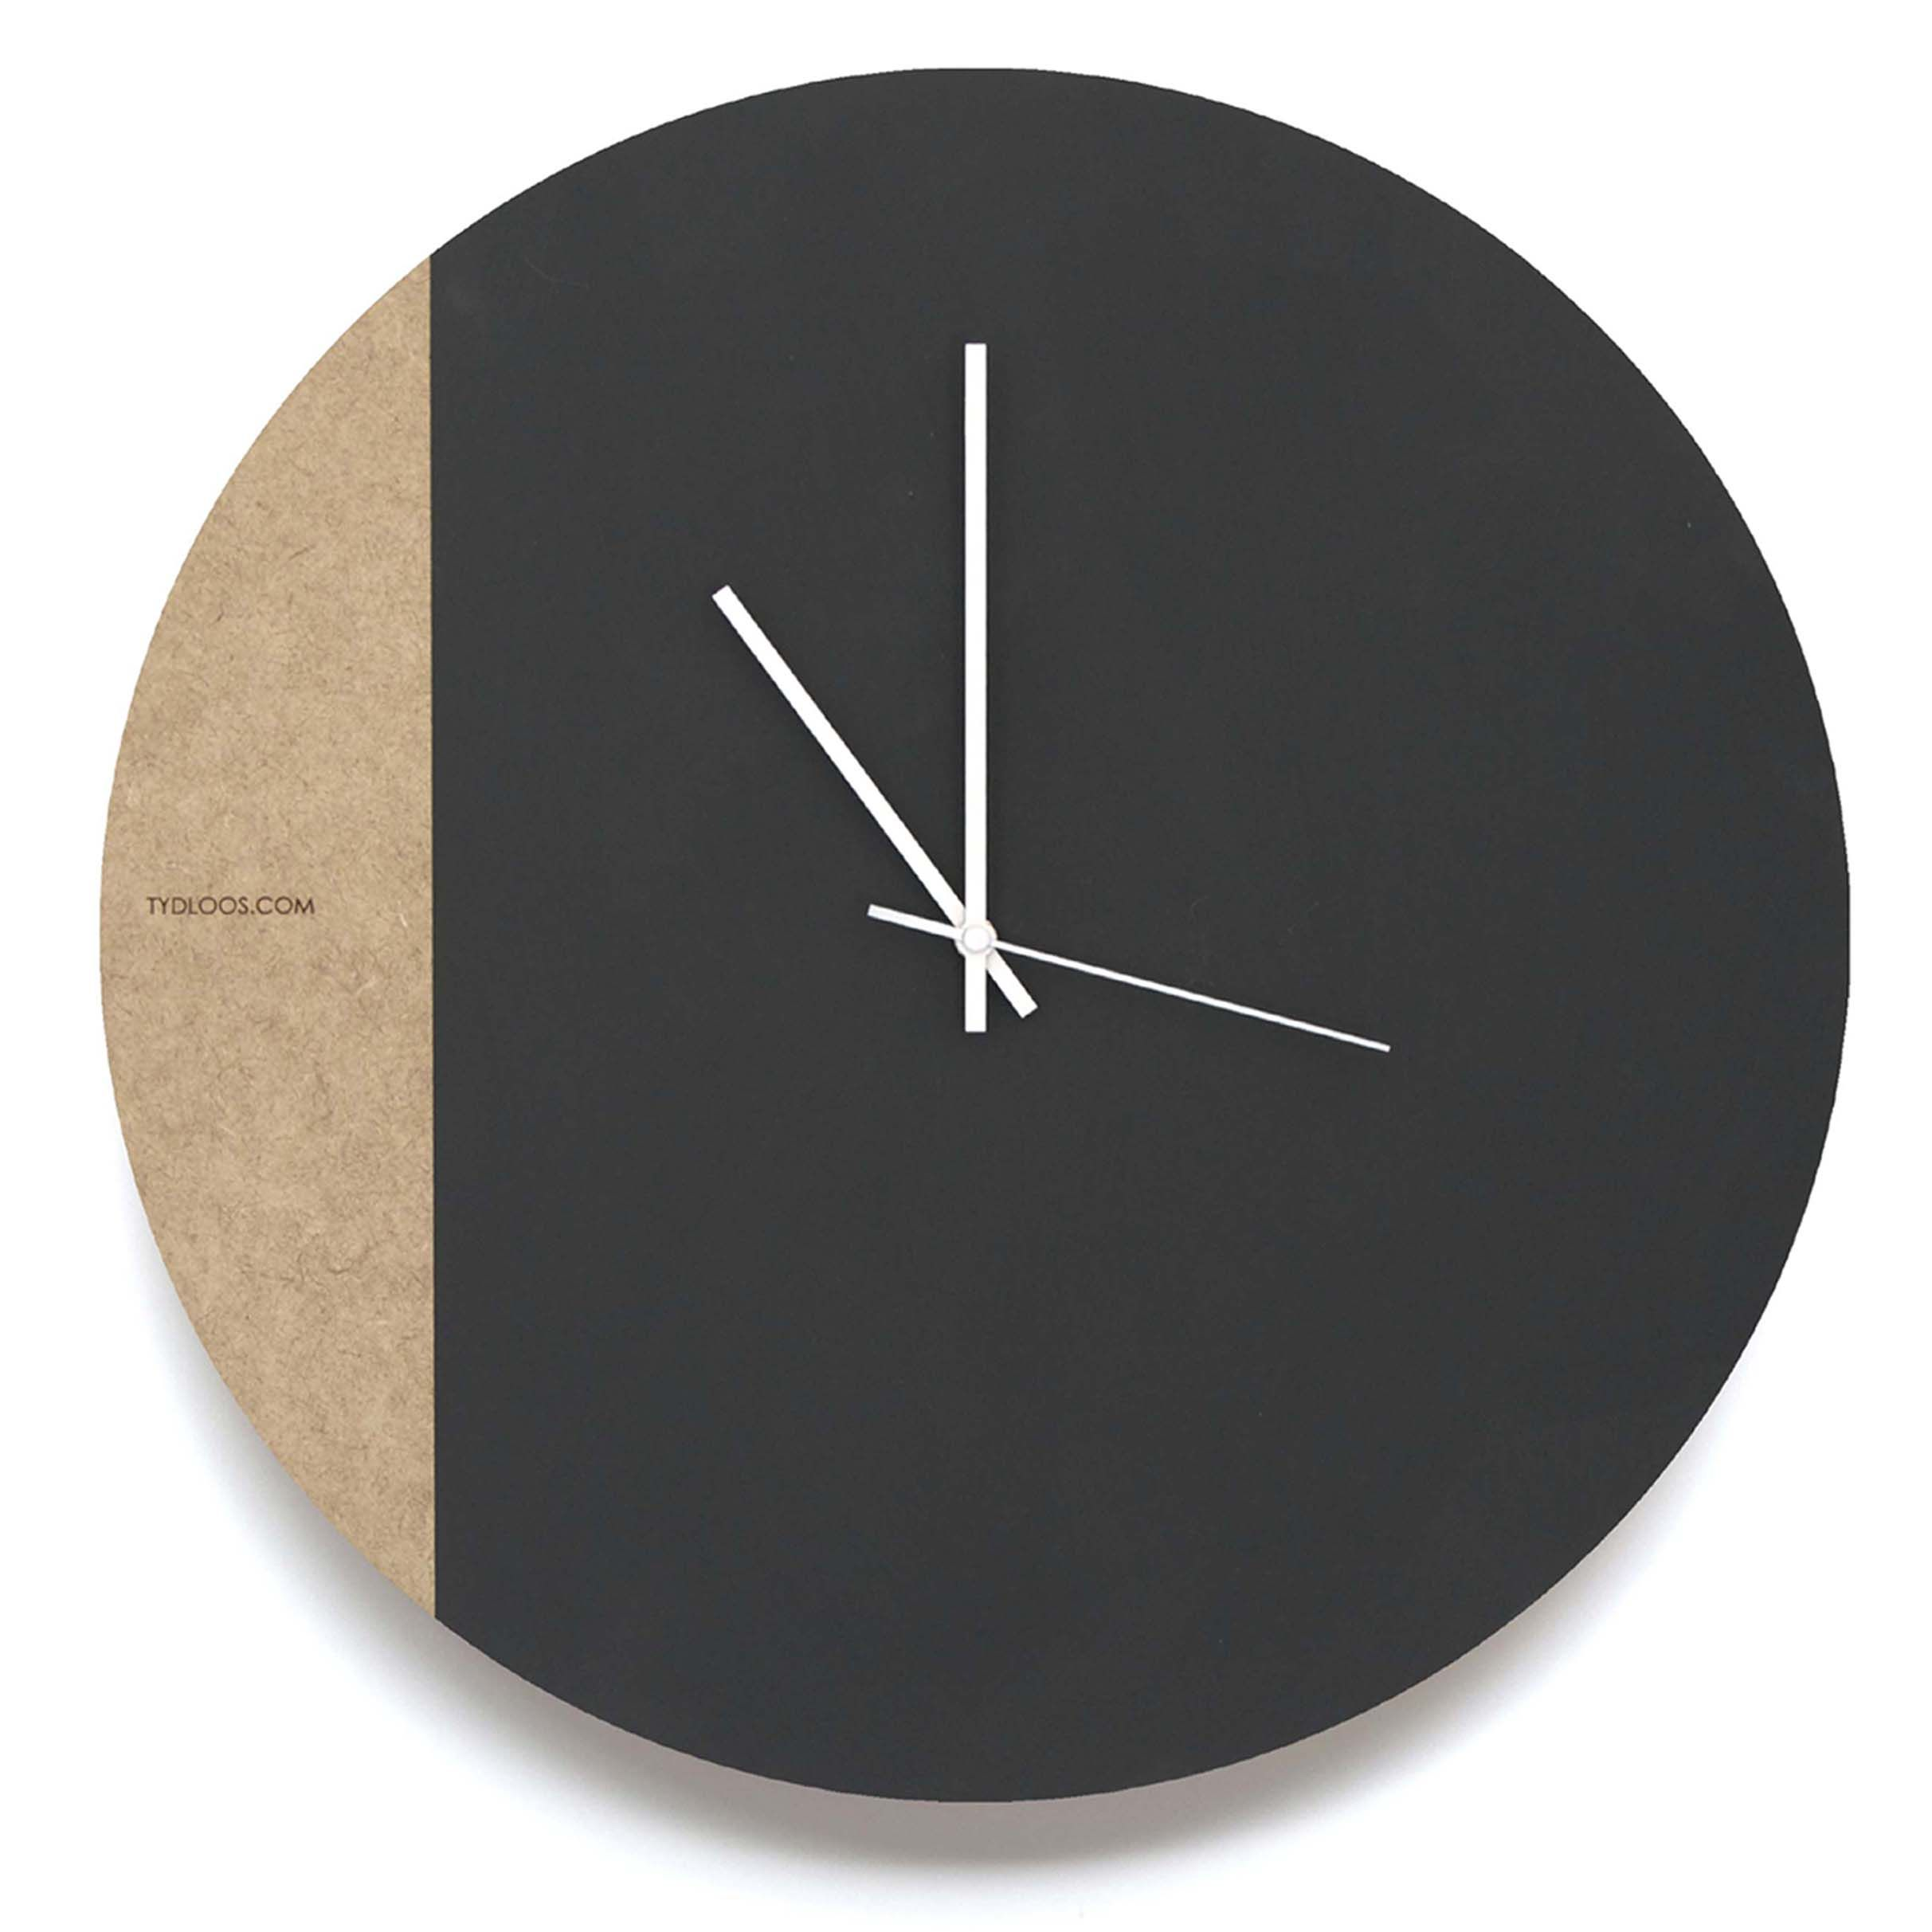 Large Minimalist Black Board Wall Clock By Tydloos At Kamersvol Father S Day Gift Ideas